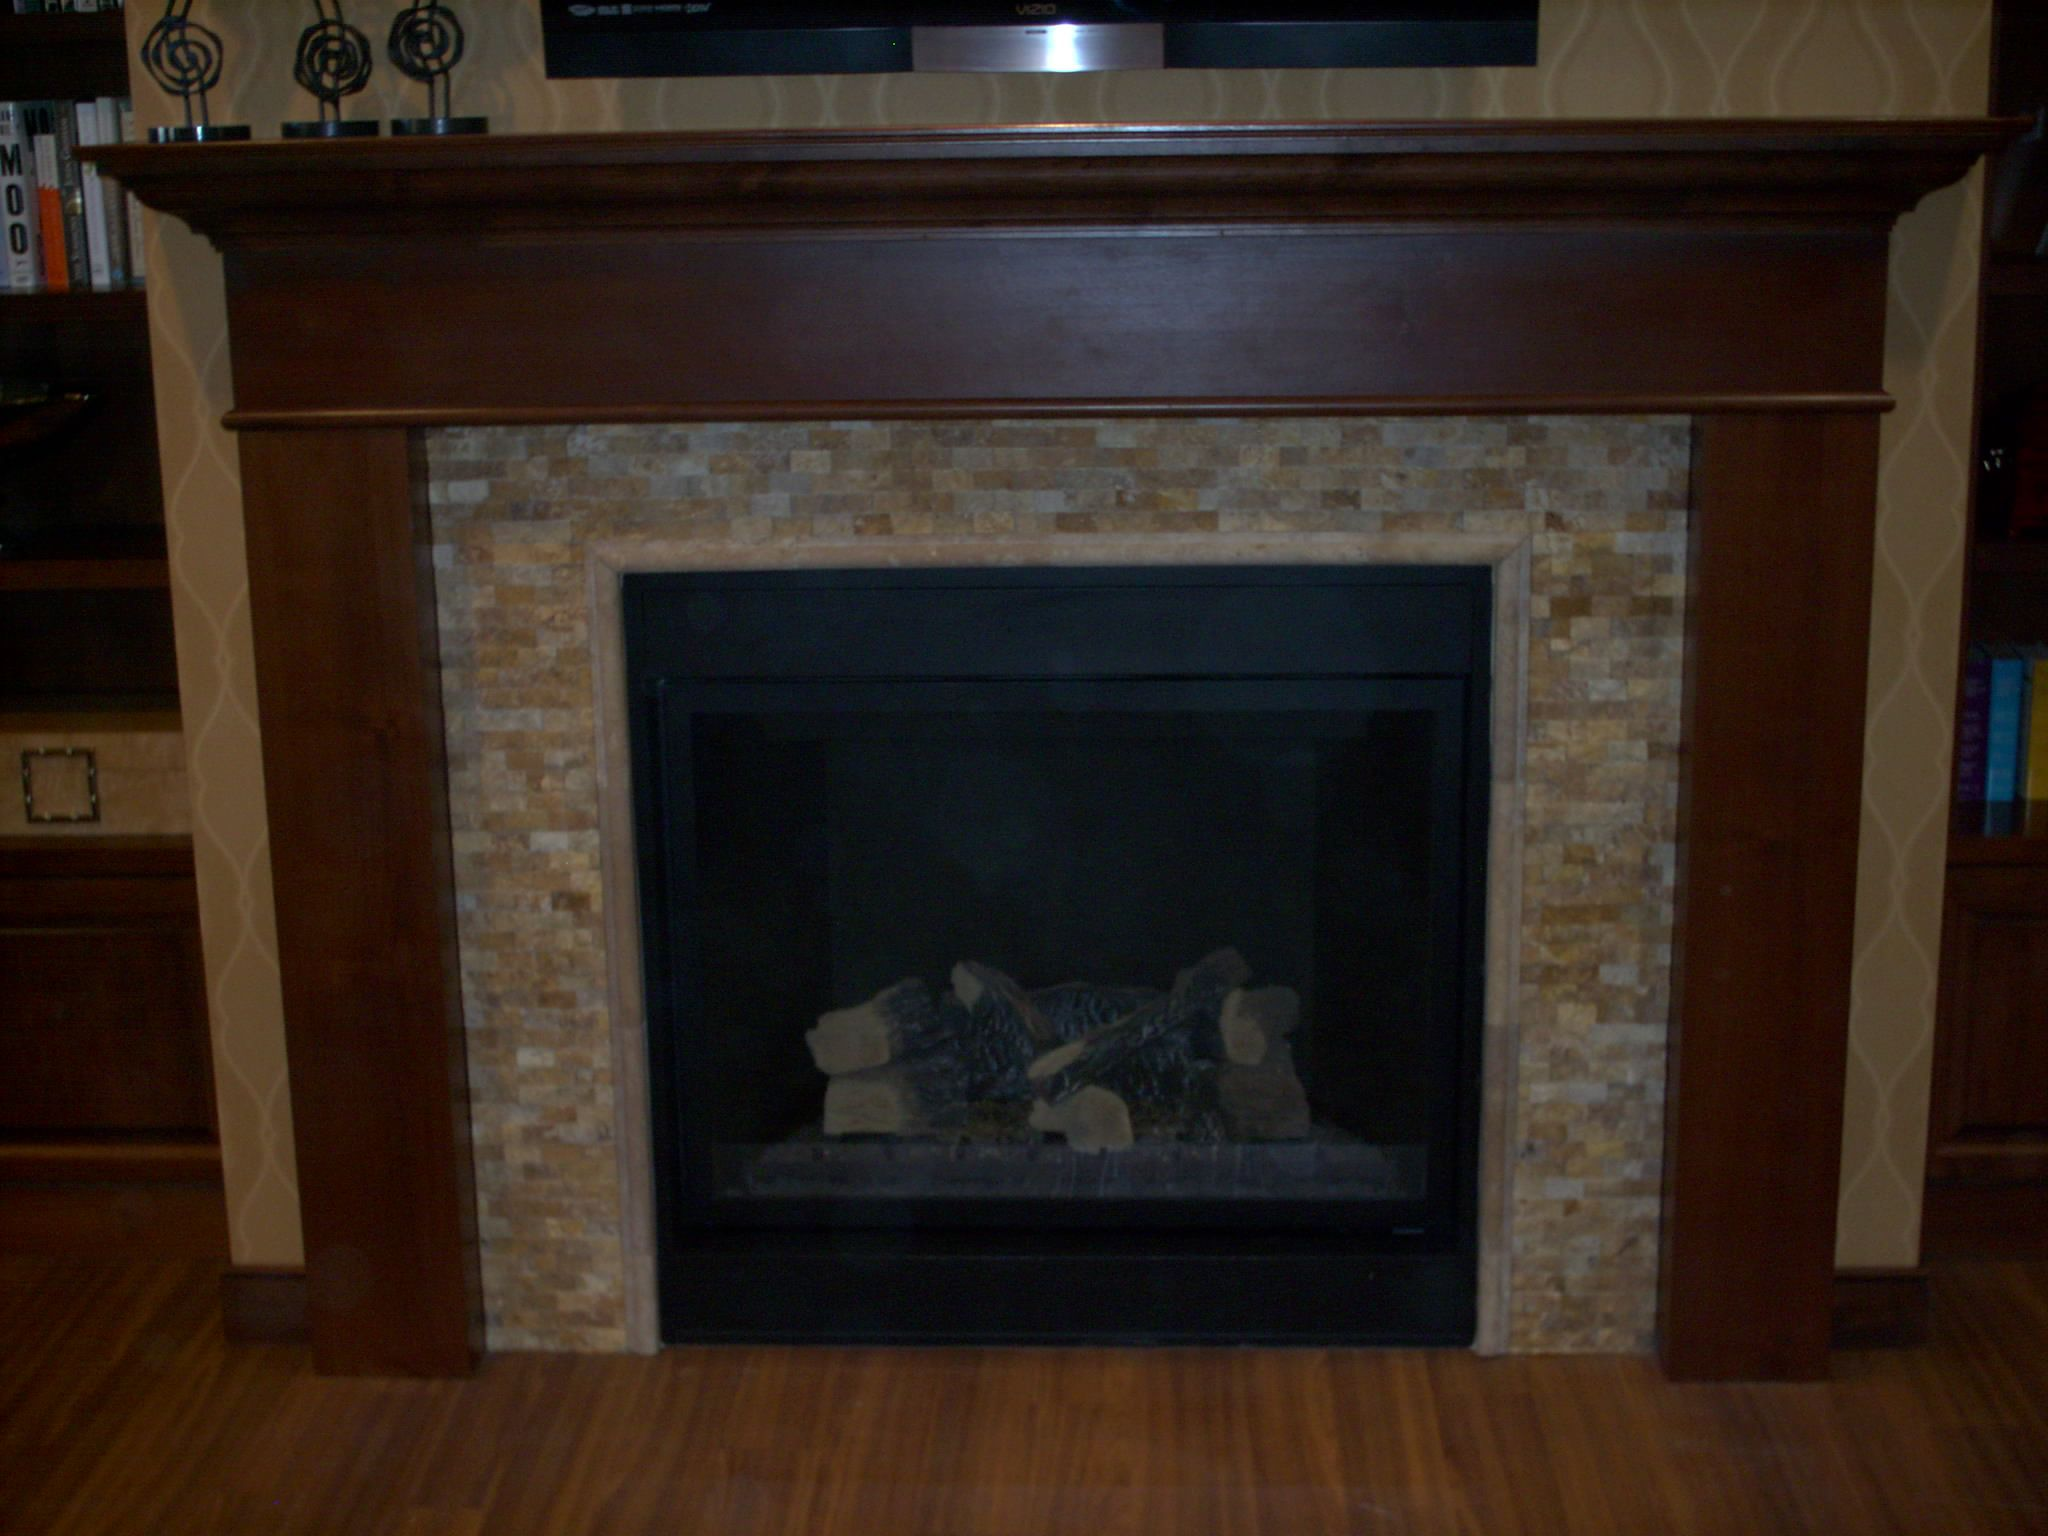 granite fireplace surround designs fireplace surround in fort collins colorado fireplace surround design ideas - Fireplace Surround Design Ideas